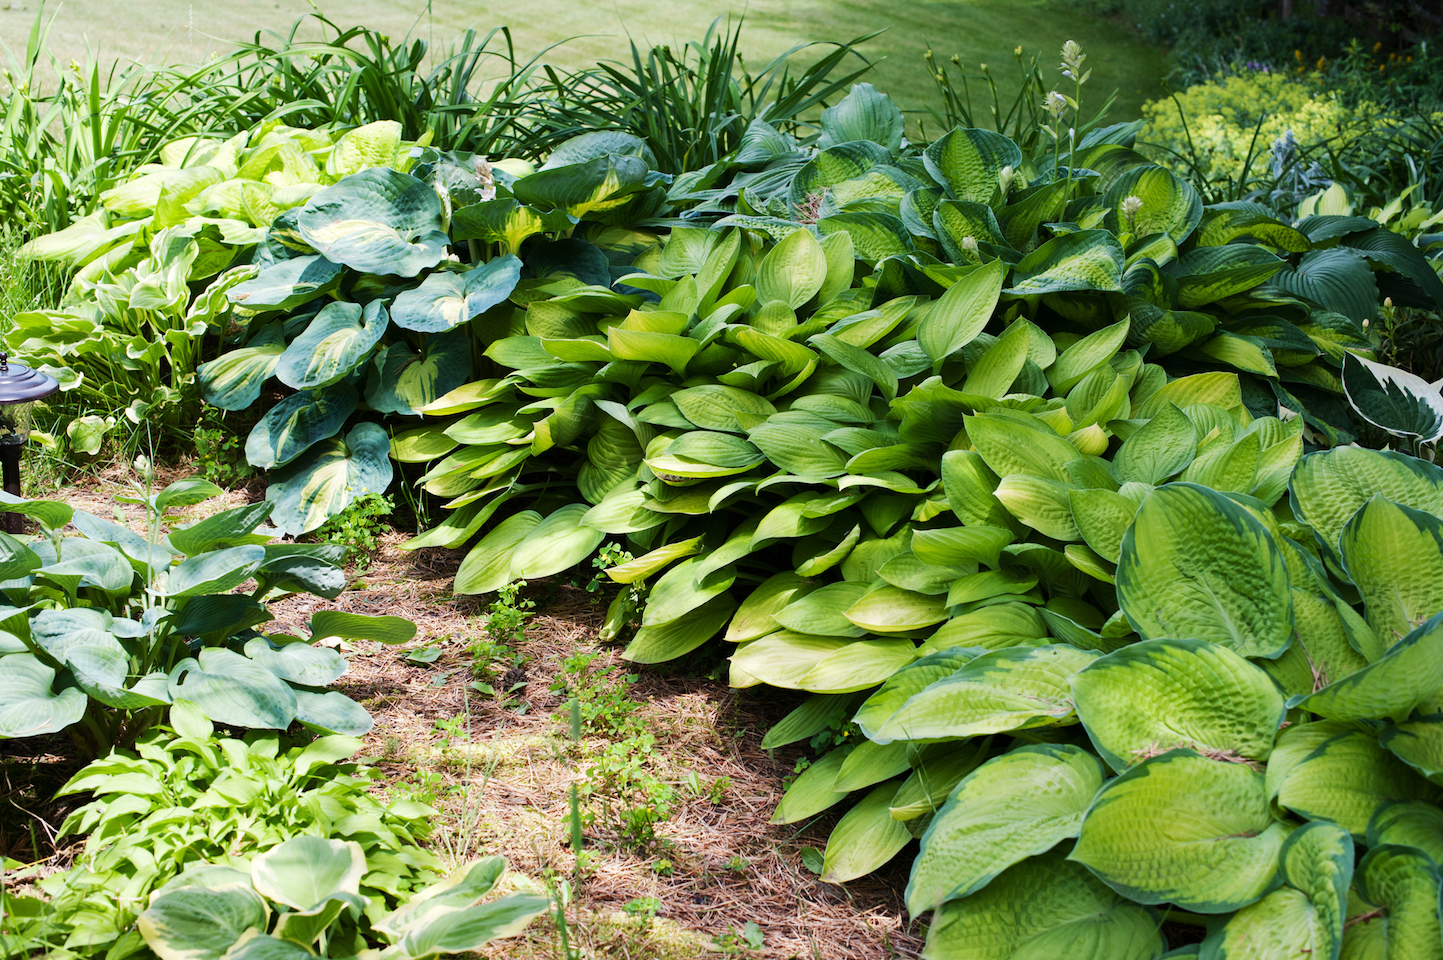 A large number of hostas in a garden